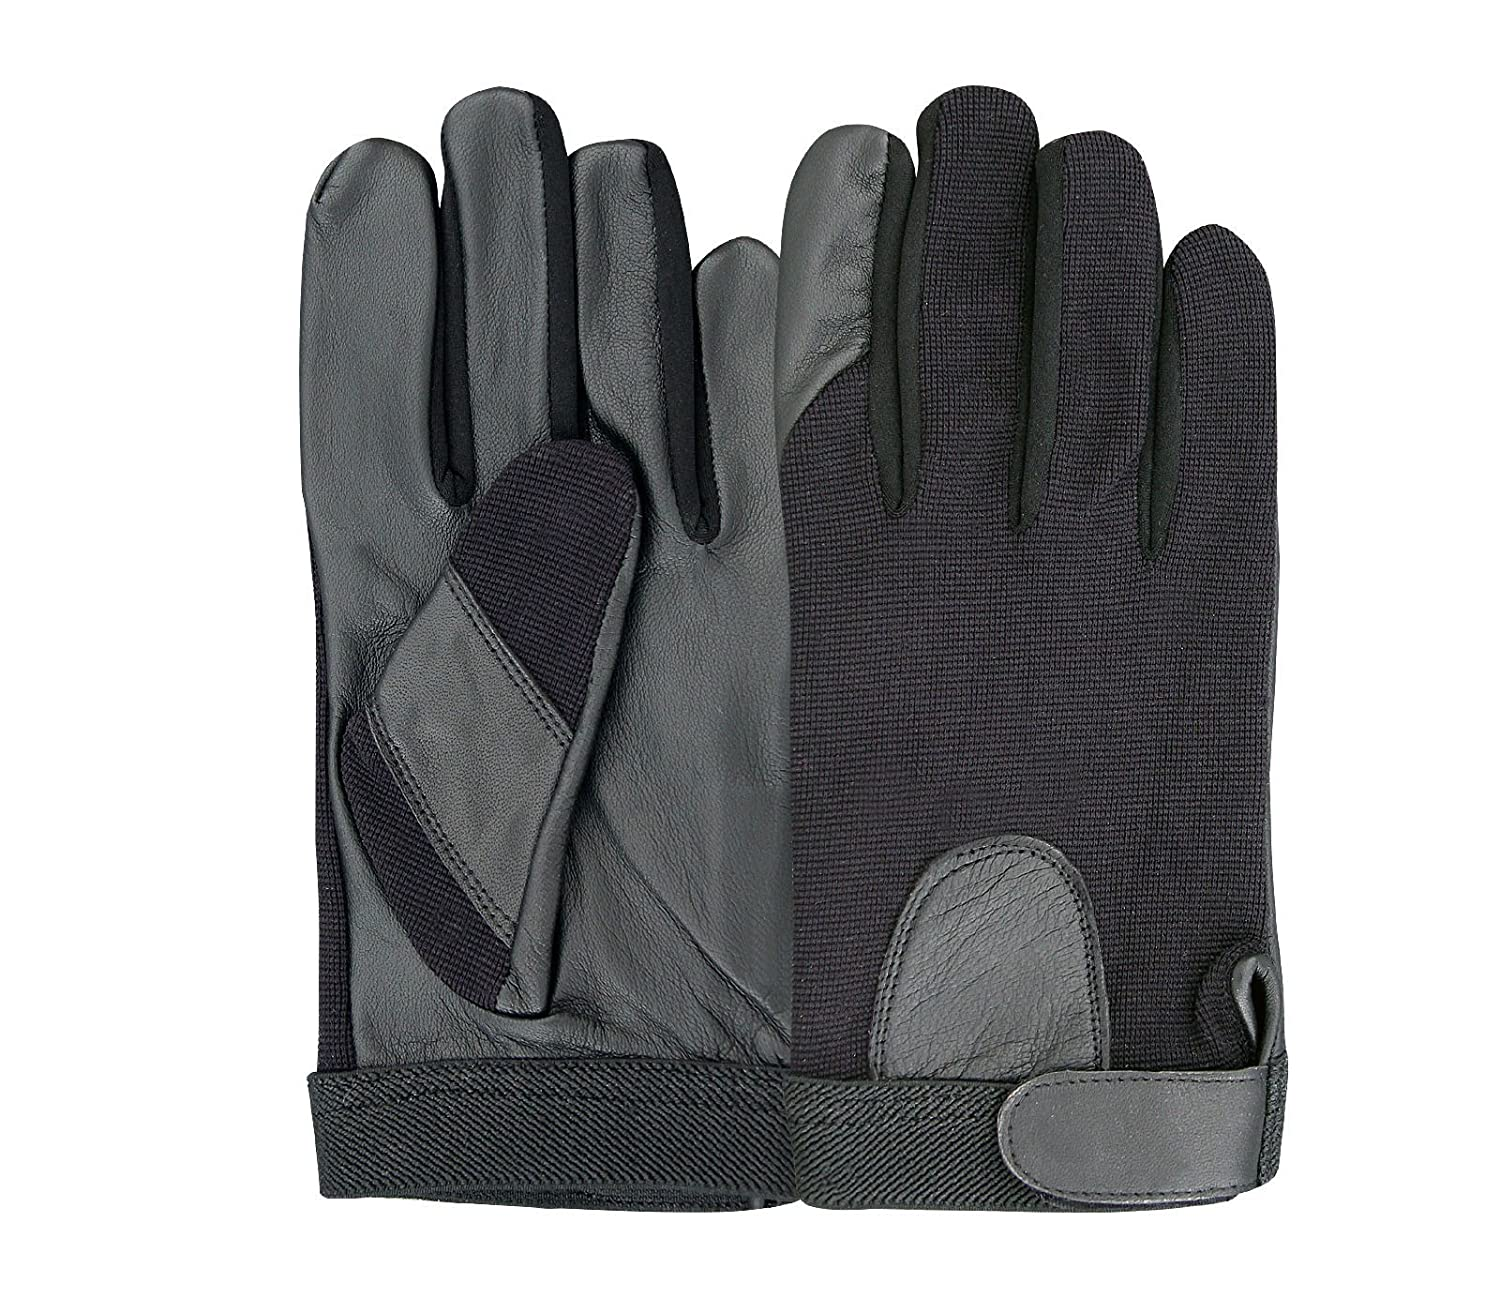 Driving gloves argos - Men S Slim Fit Leather Driving Gloves Soft Black Leather Amazon Co Uk Sports Outdoors